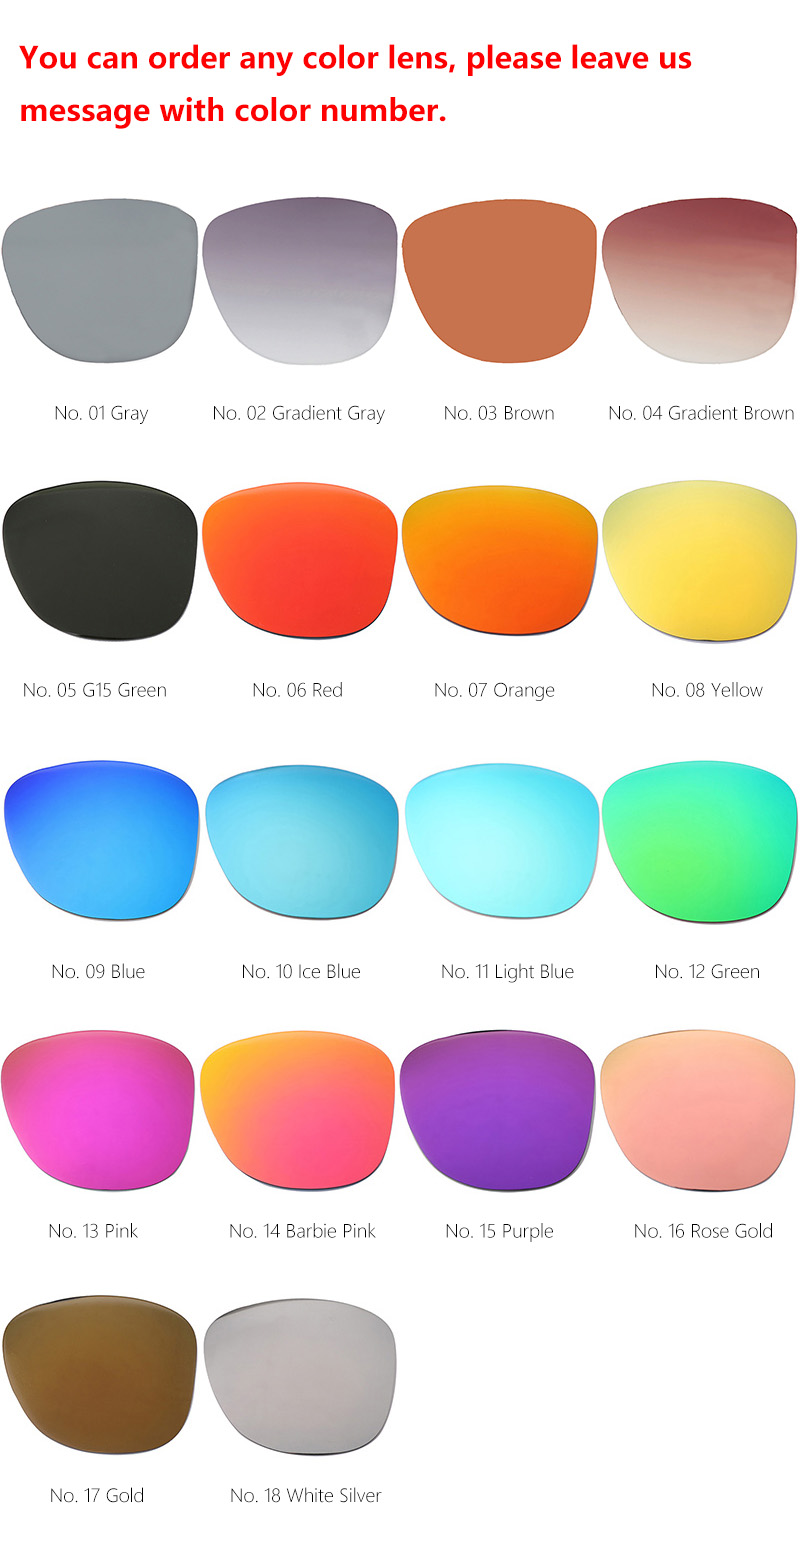 18 lens color - new